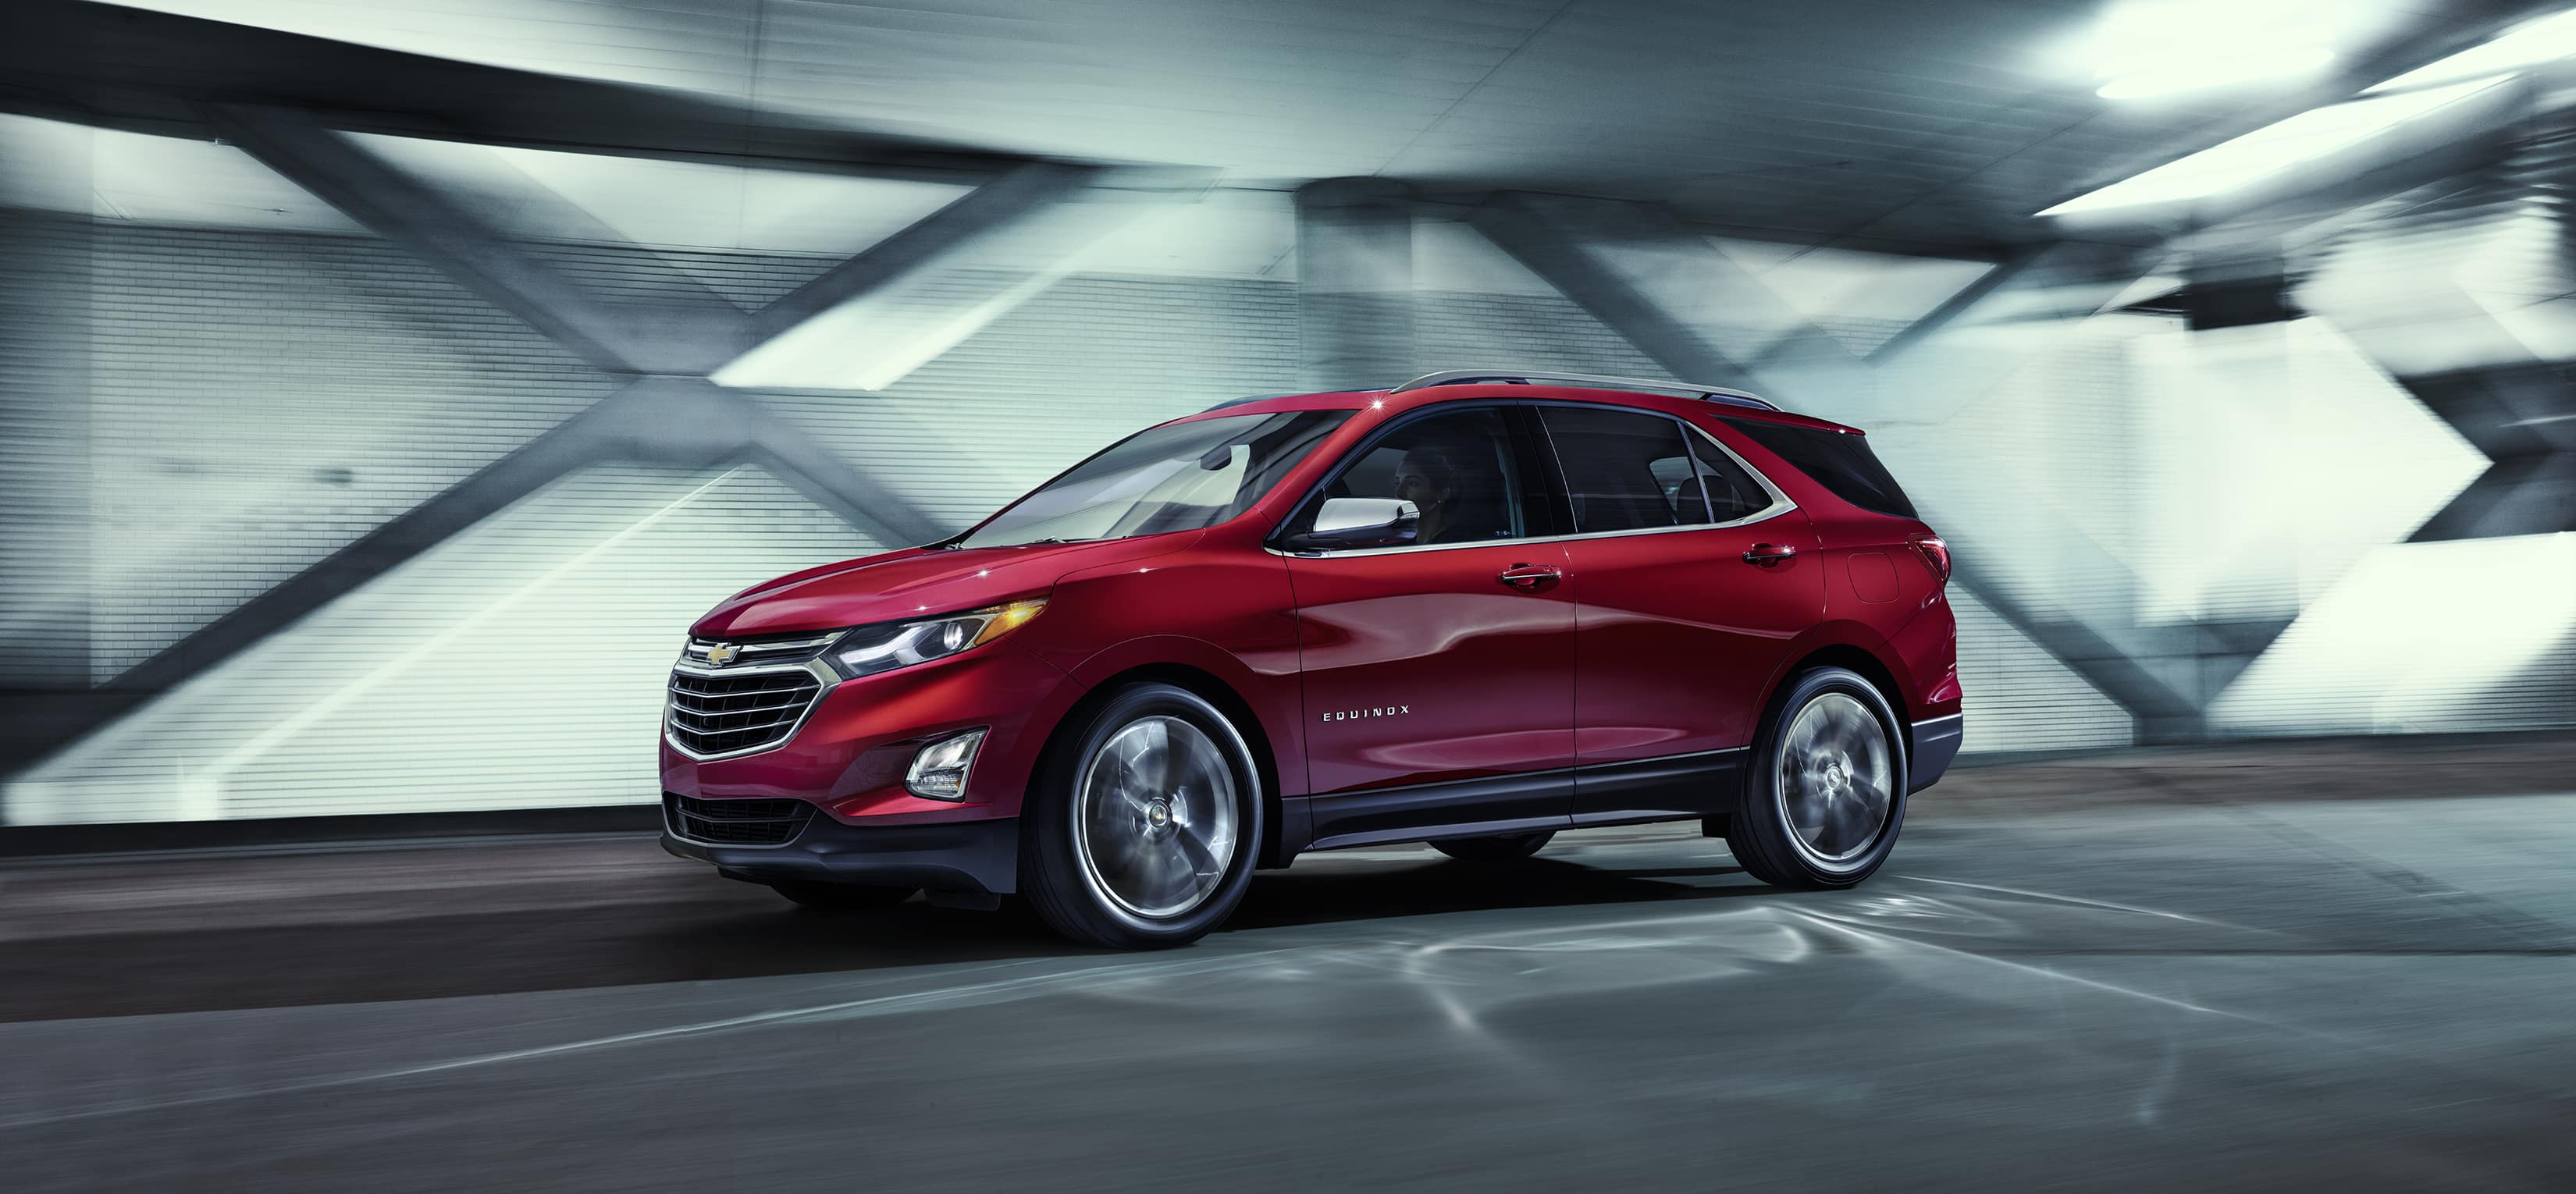 2018 Chevrolet Equinox Chicago IL